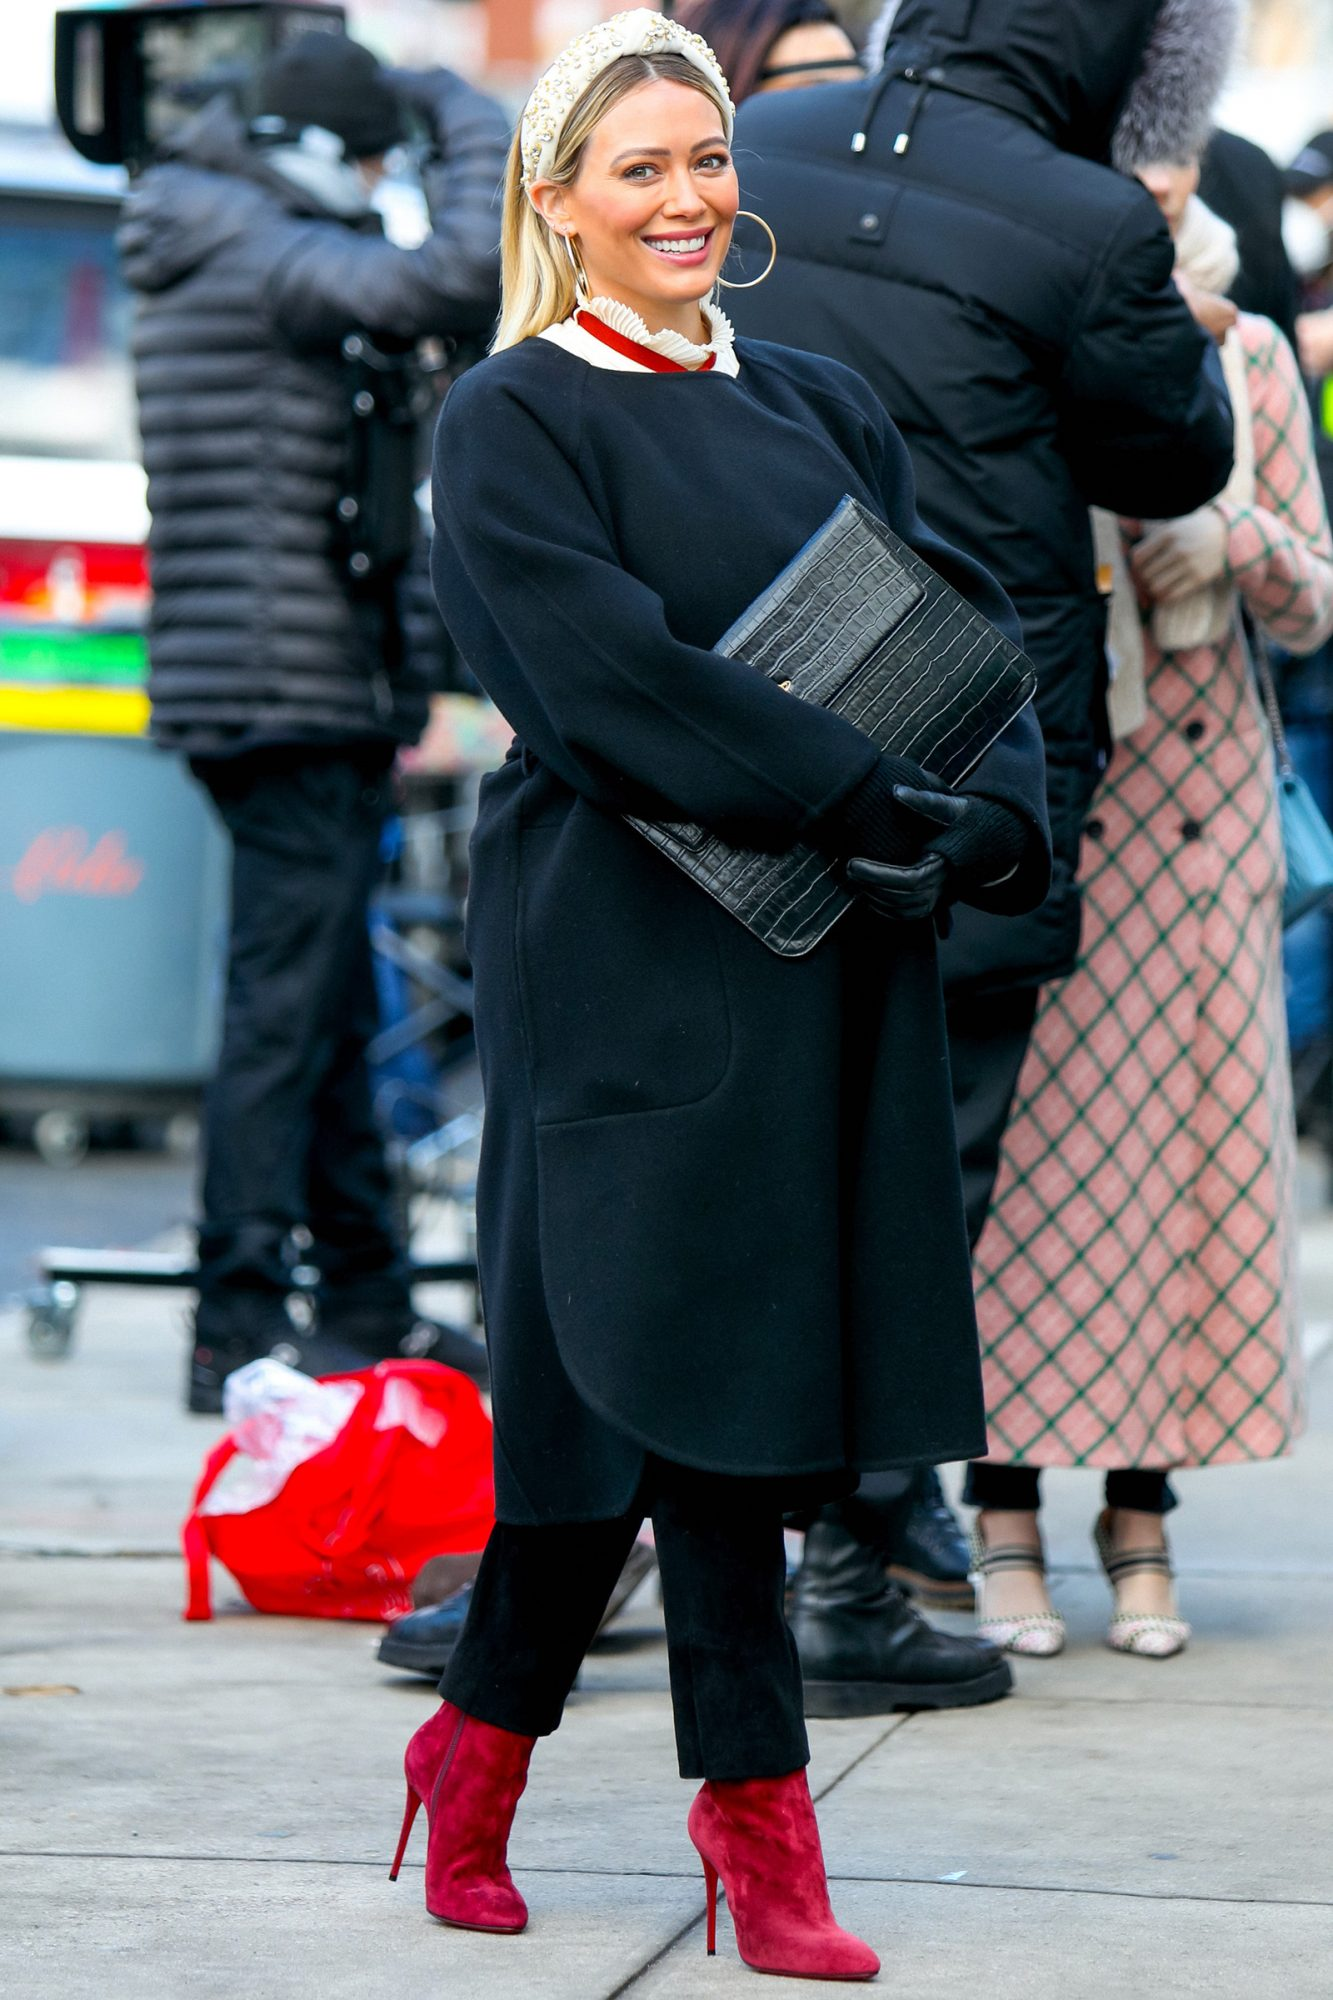 Hilary Duff is seen at the film set of the 'Younger' TV Series in Downtown, Manhattan on January 20, 2021 in New York City